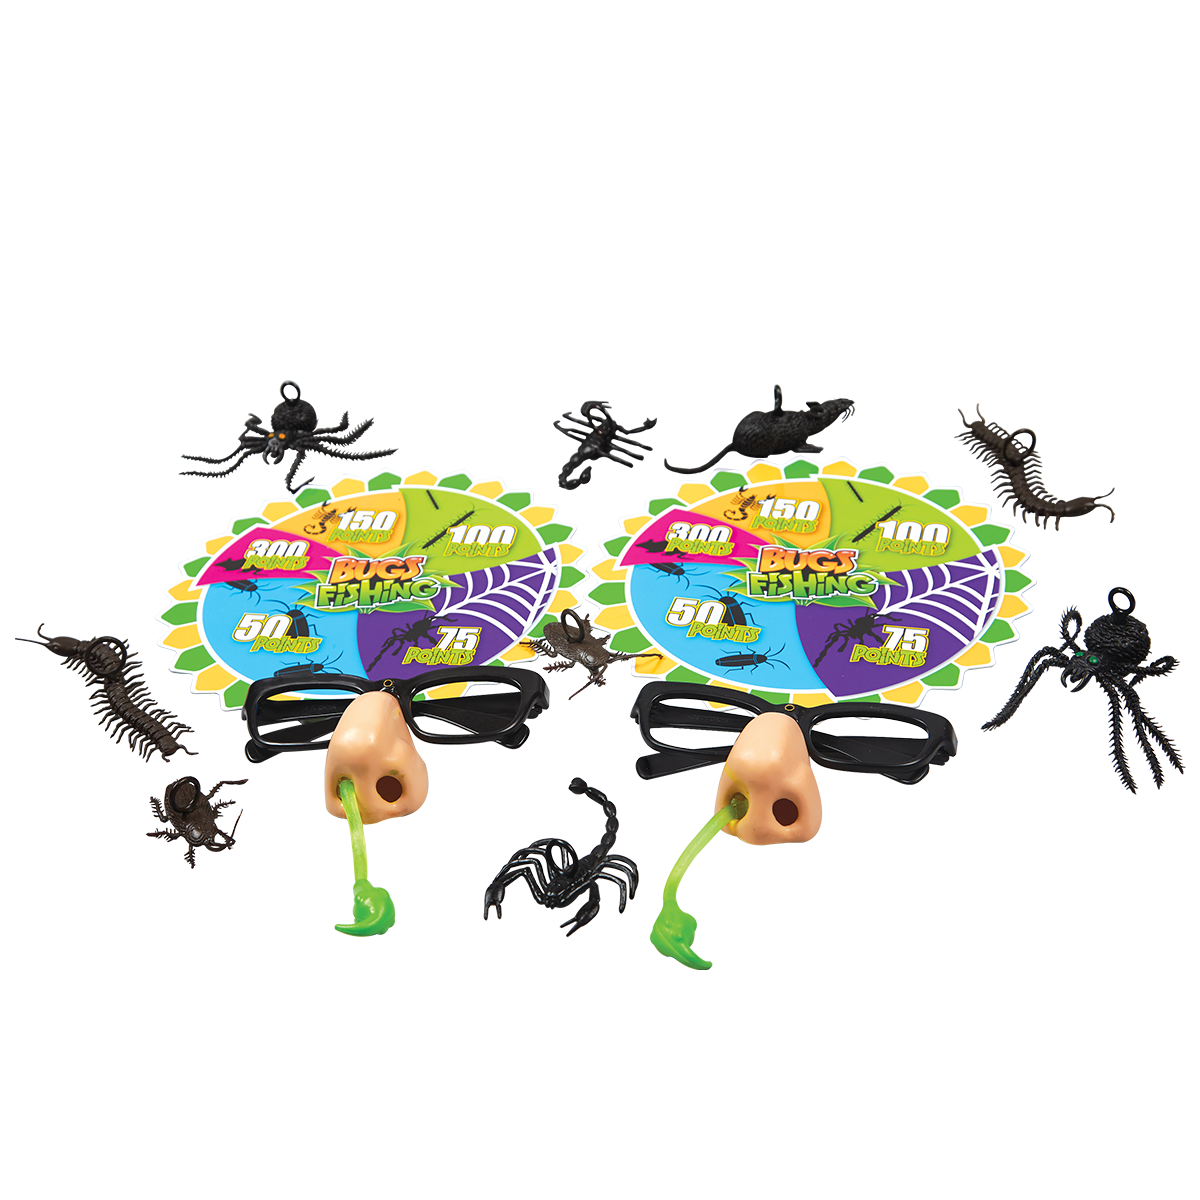 Wham-O Sticky Snot - Stay 'N Play on sale now and part of the Sticky Snot - Stay 'N Play of products.